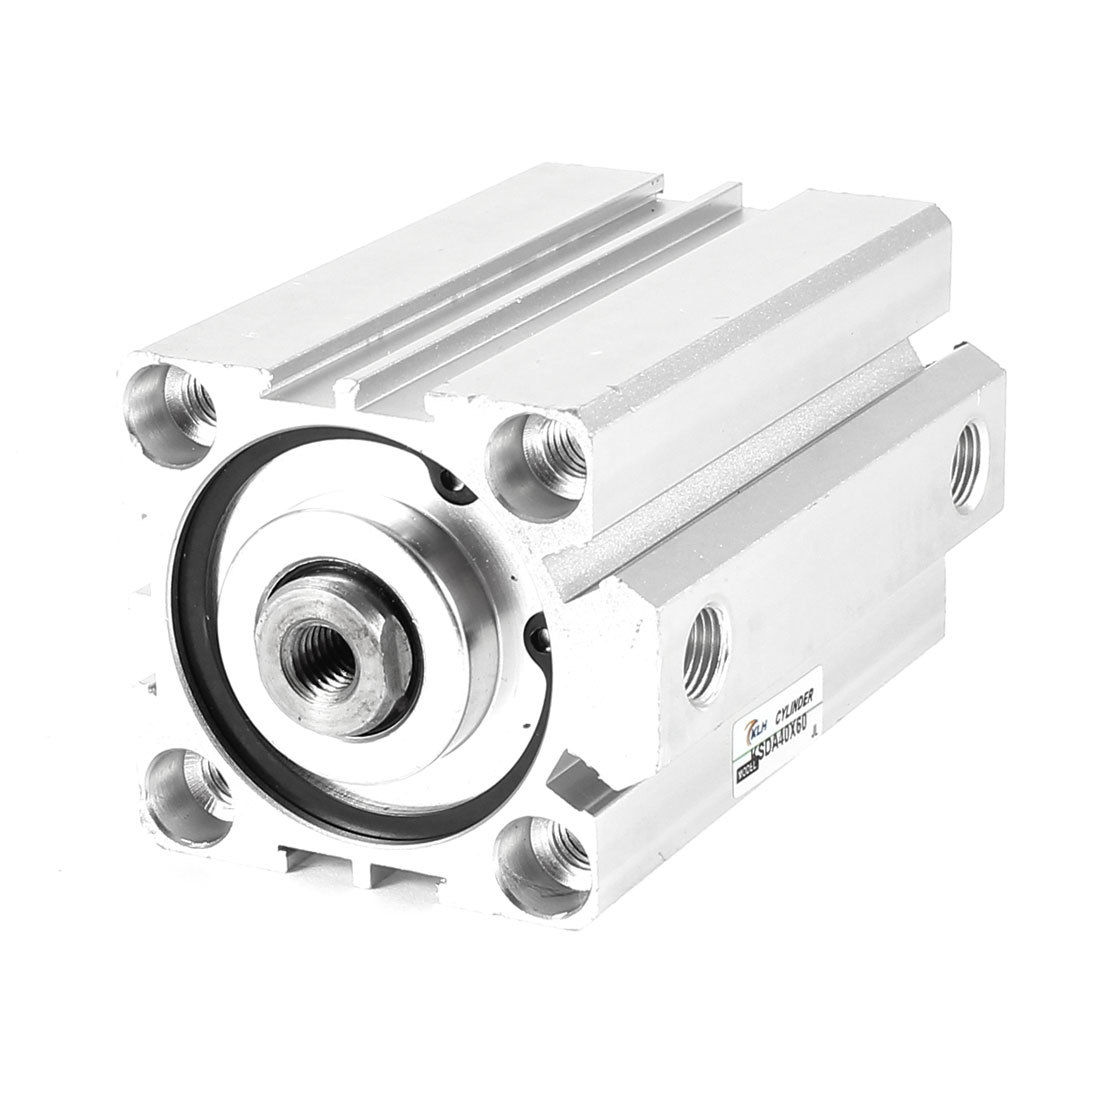 1 Pcs 50mm Bore 90mm Stroke Stainless steel Pneumatic Air Cylinder SDA50-90 1 pcs 50mm bore 25mm stroke stainless steel pneumatic air cylinder sda50 25